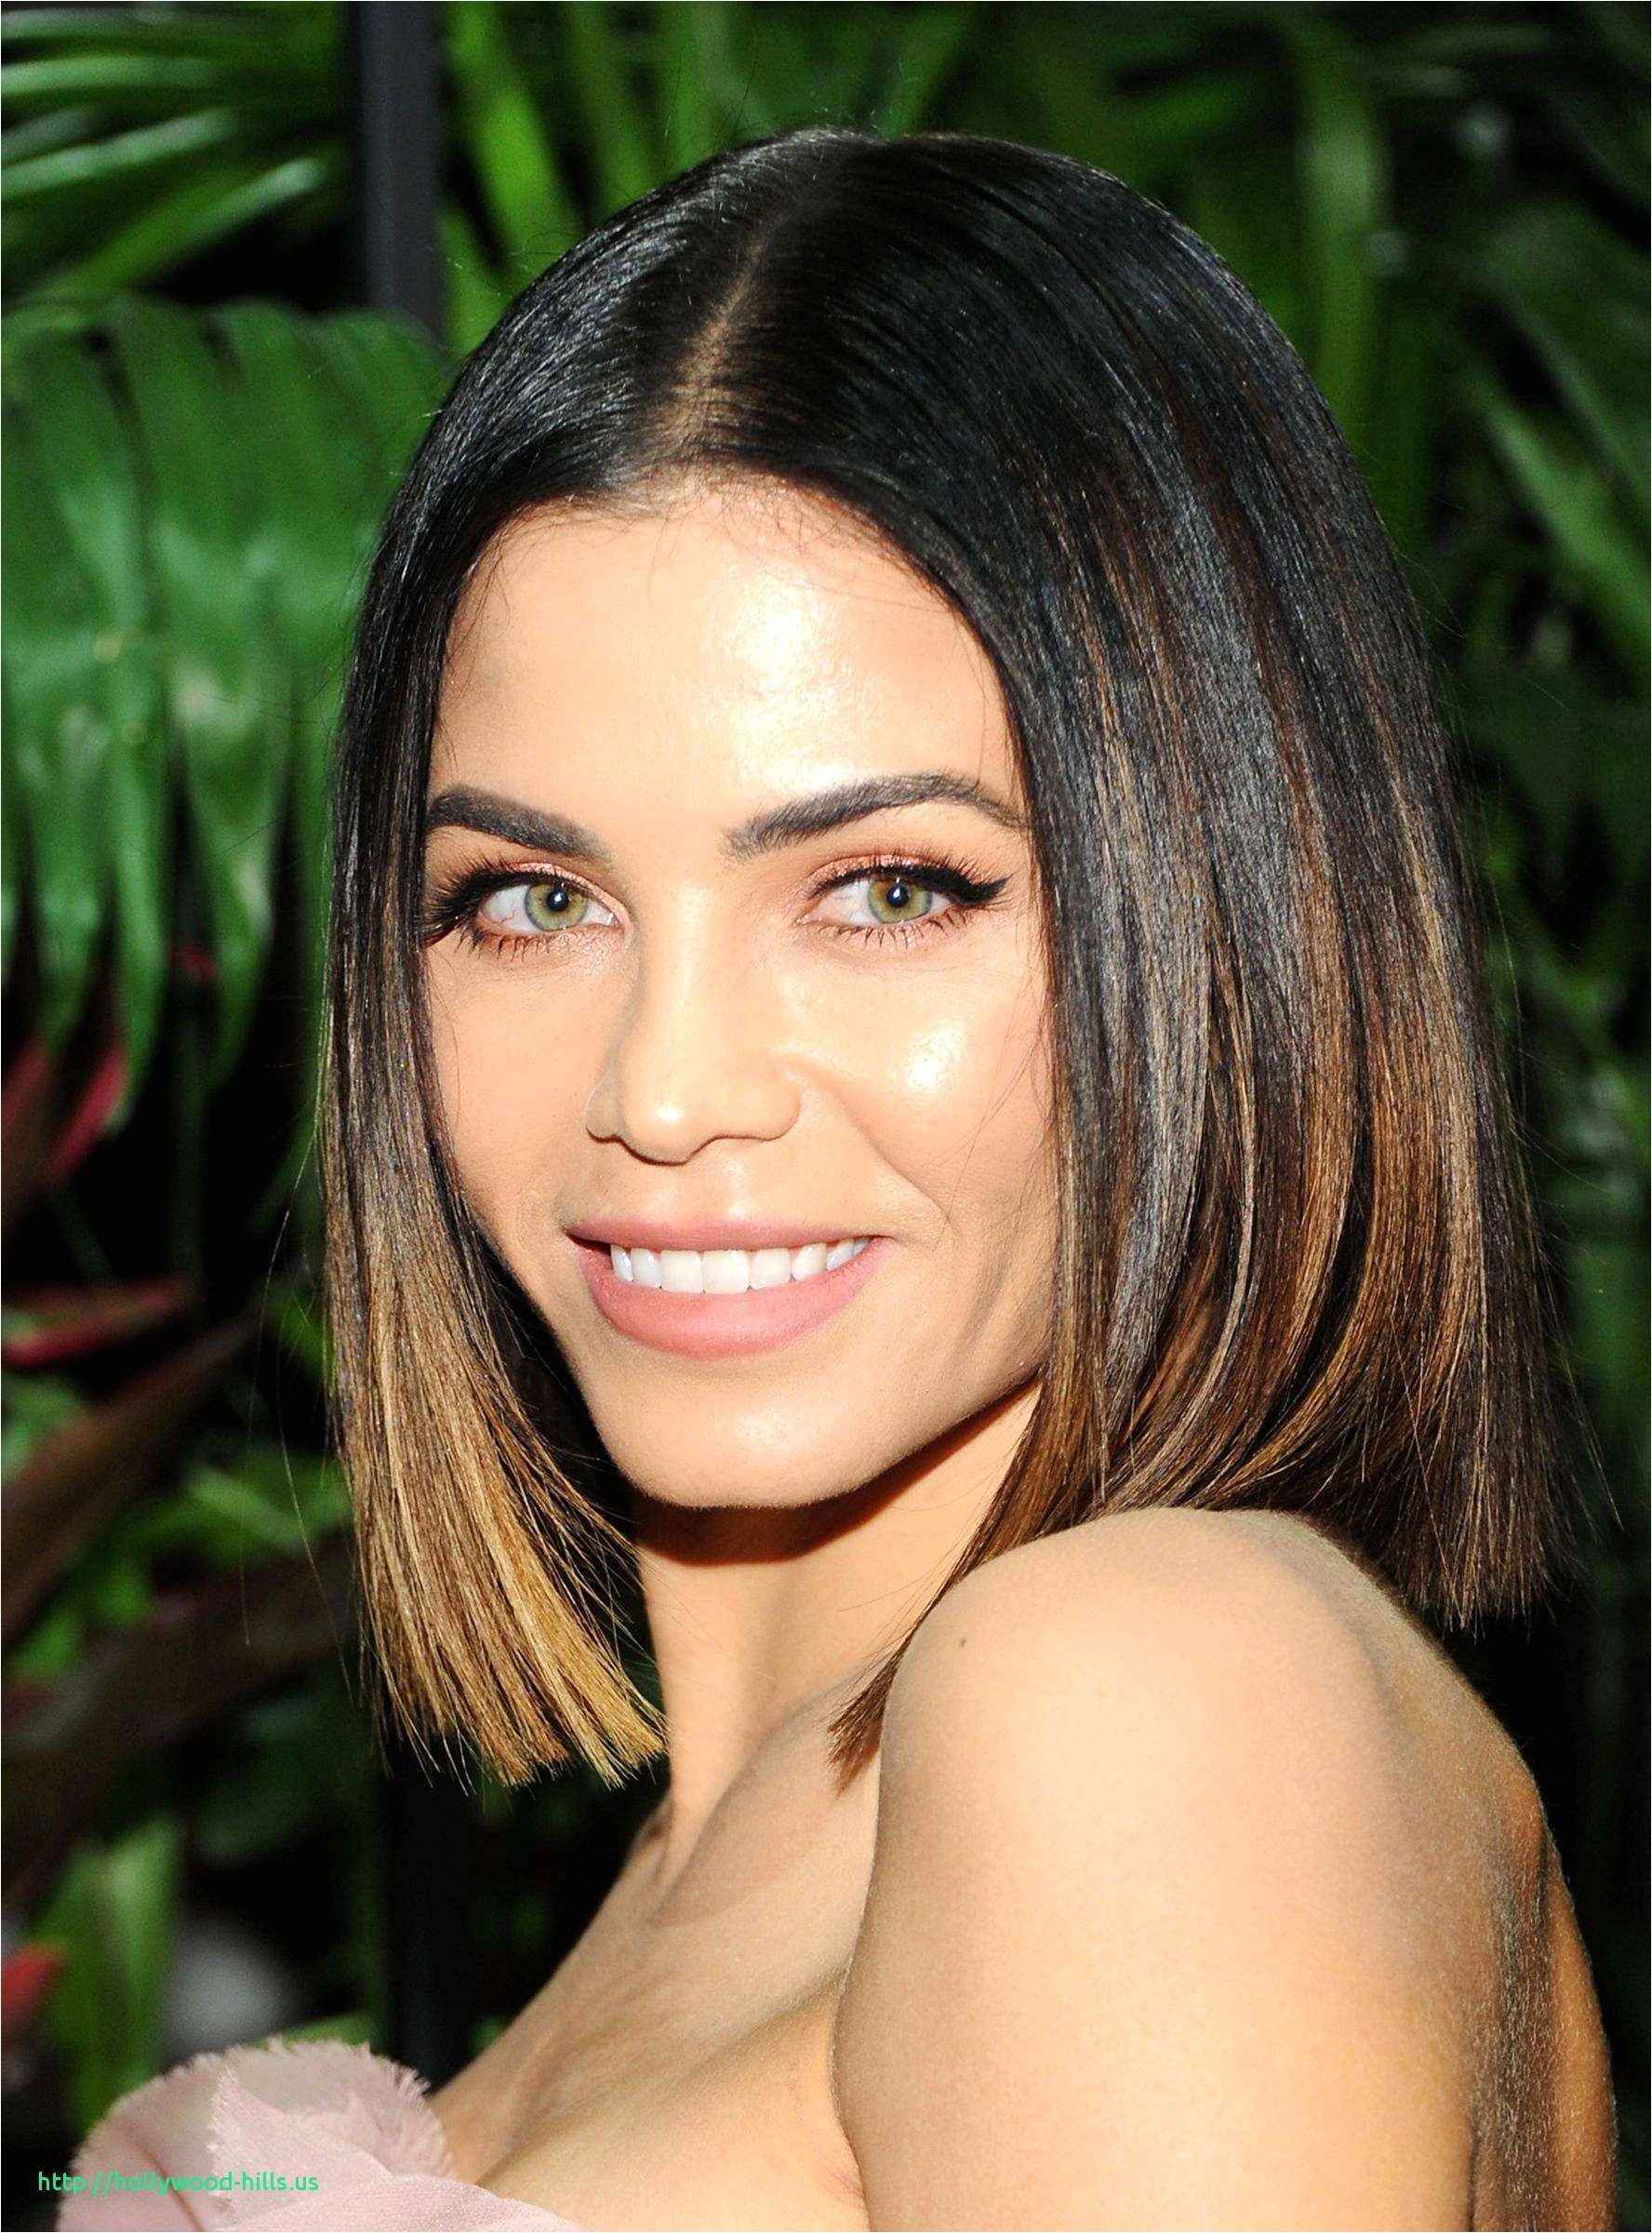 Straight Hair Hairstyles For Girls New Hairstyles For Long Hair Handsome Straight Hairstyles 0d Instyler